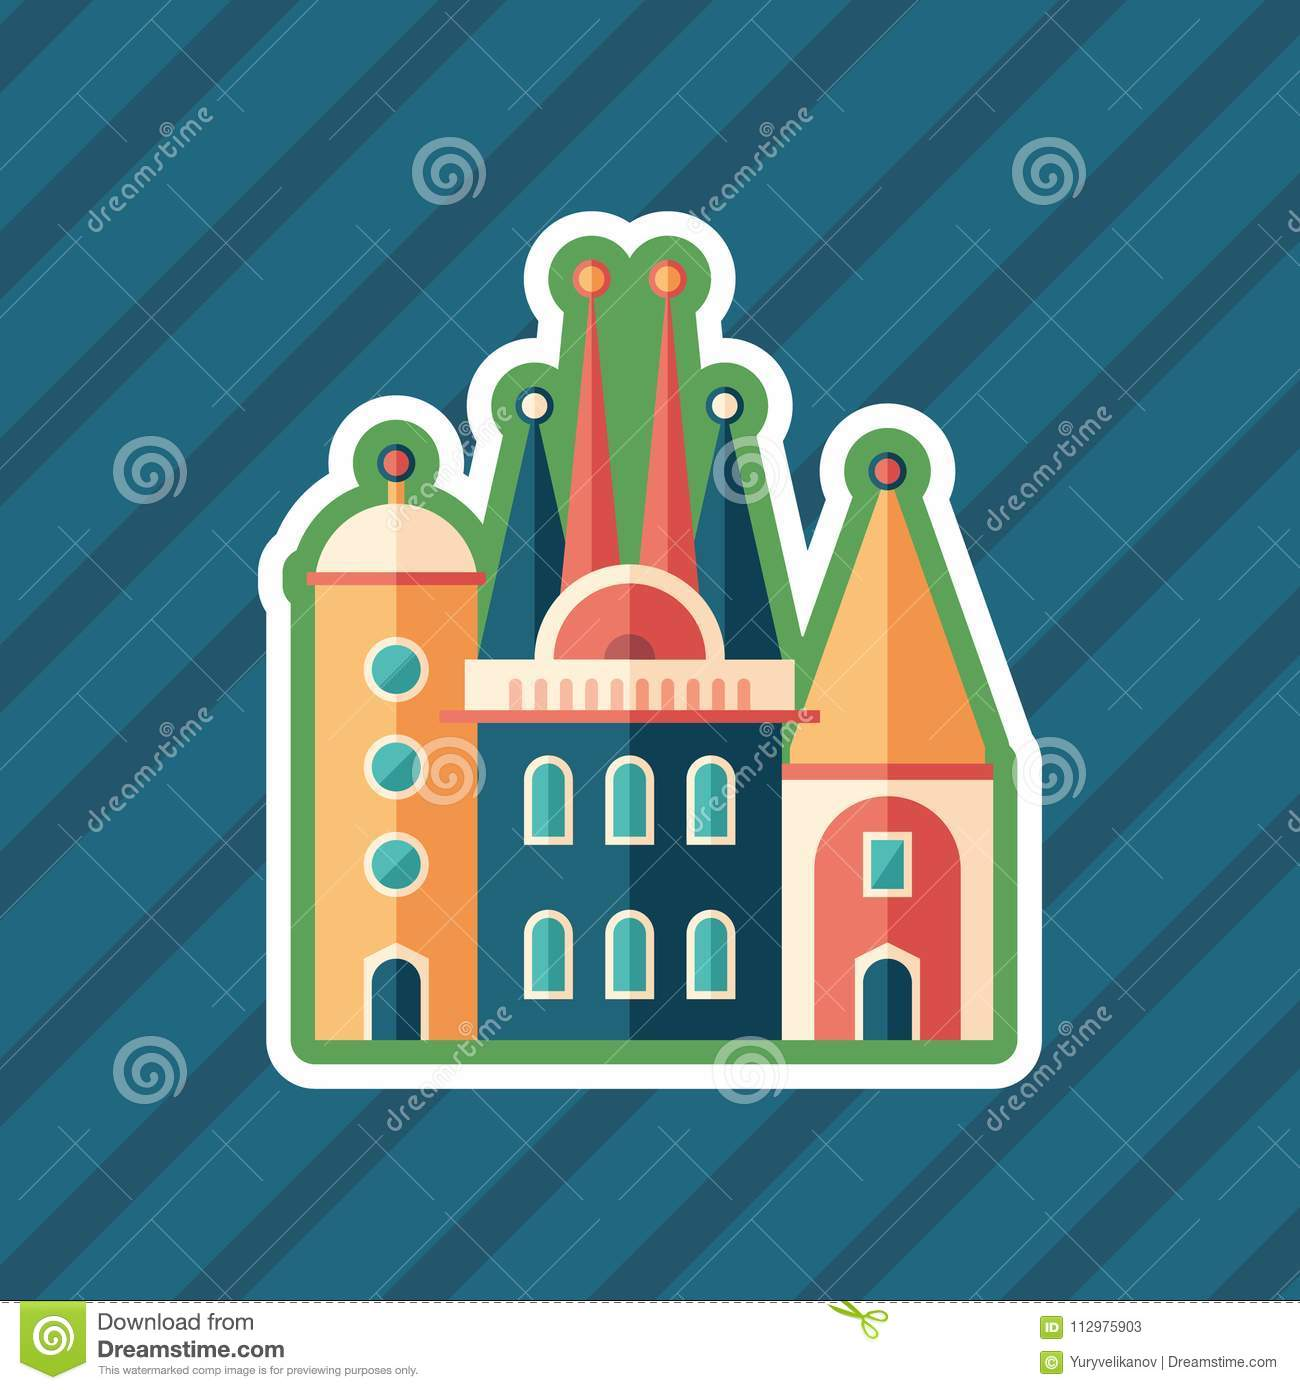 Fairytale castle sticker flat icon with color background.